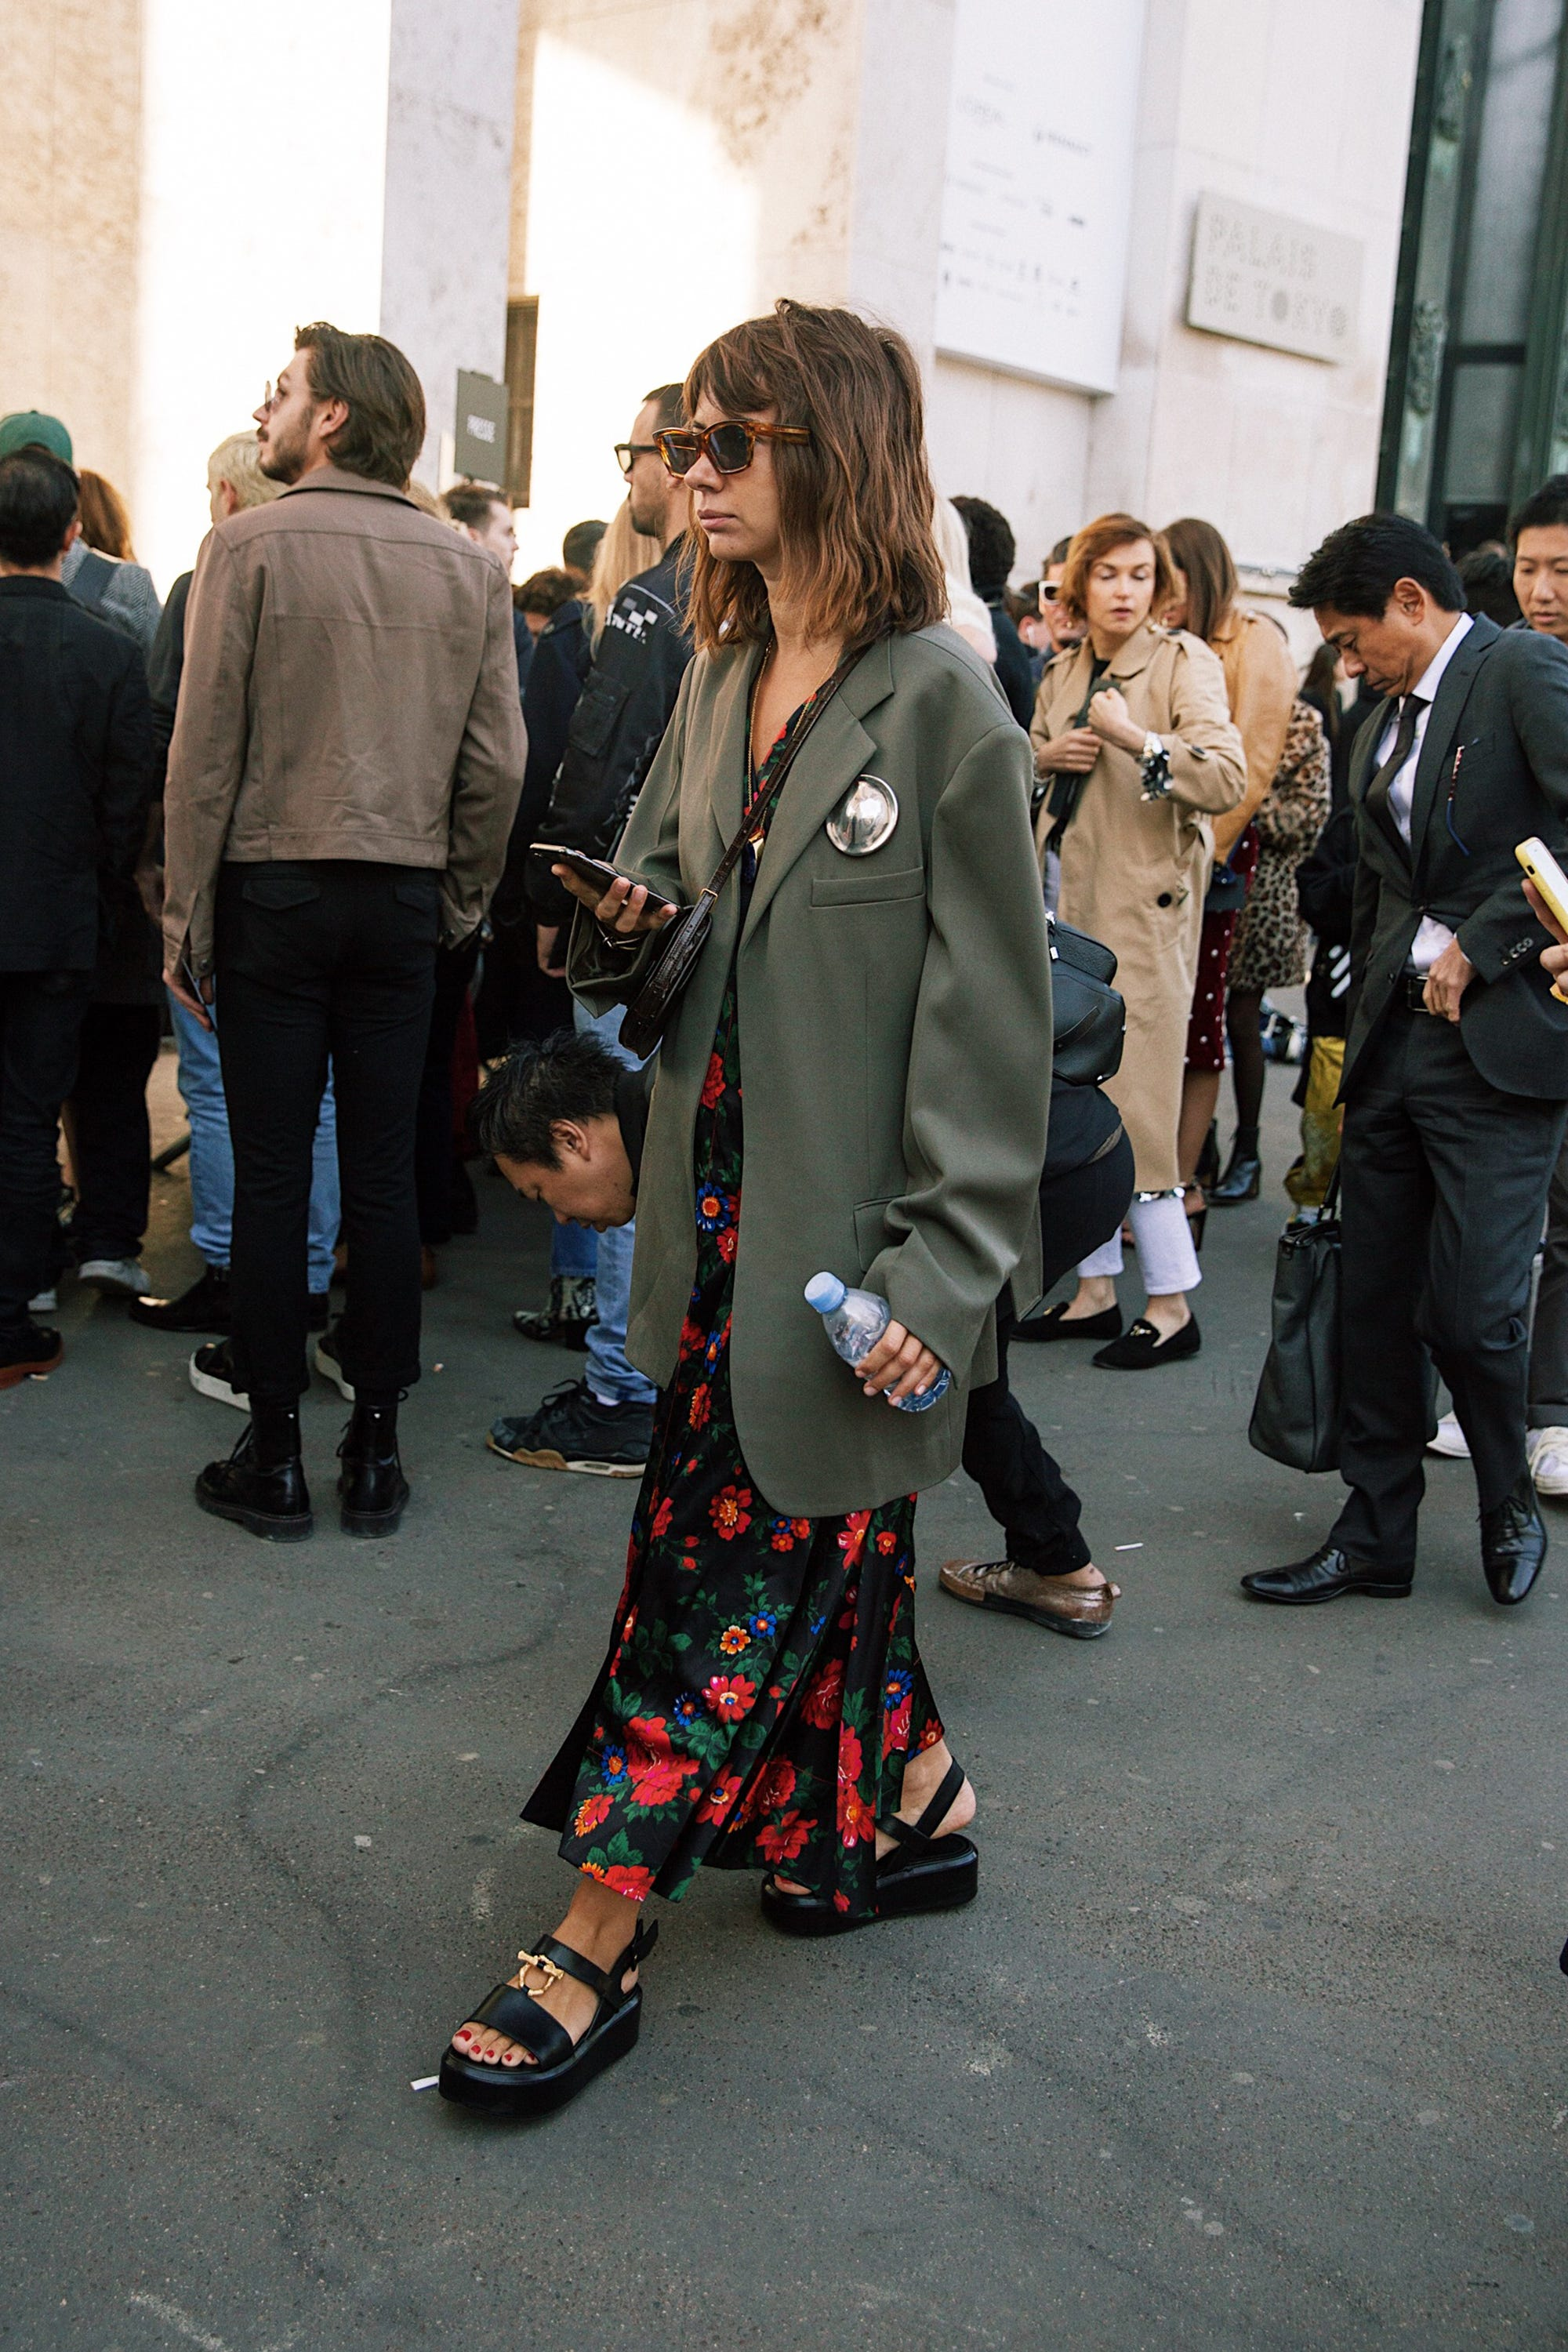 bc6d8190 https://www.refinery29.com/en-us/2018/09/210982/paris-fashion-week ...